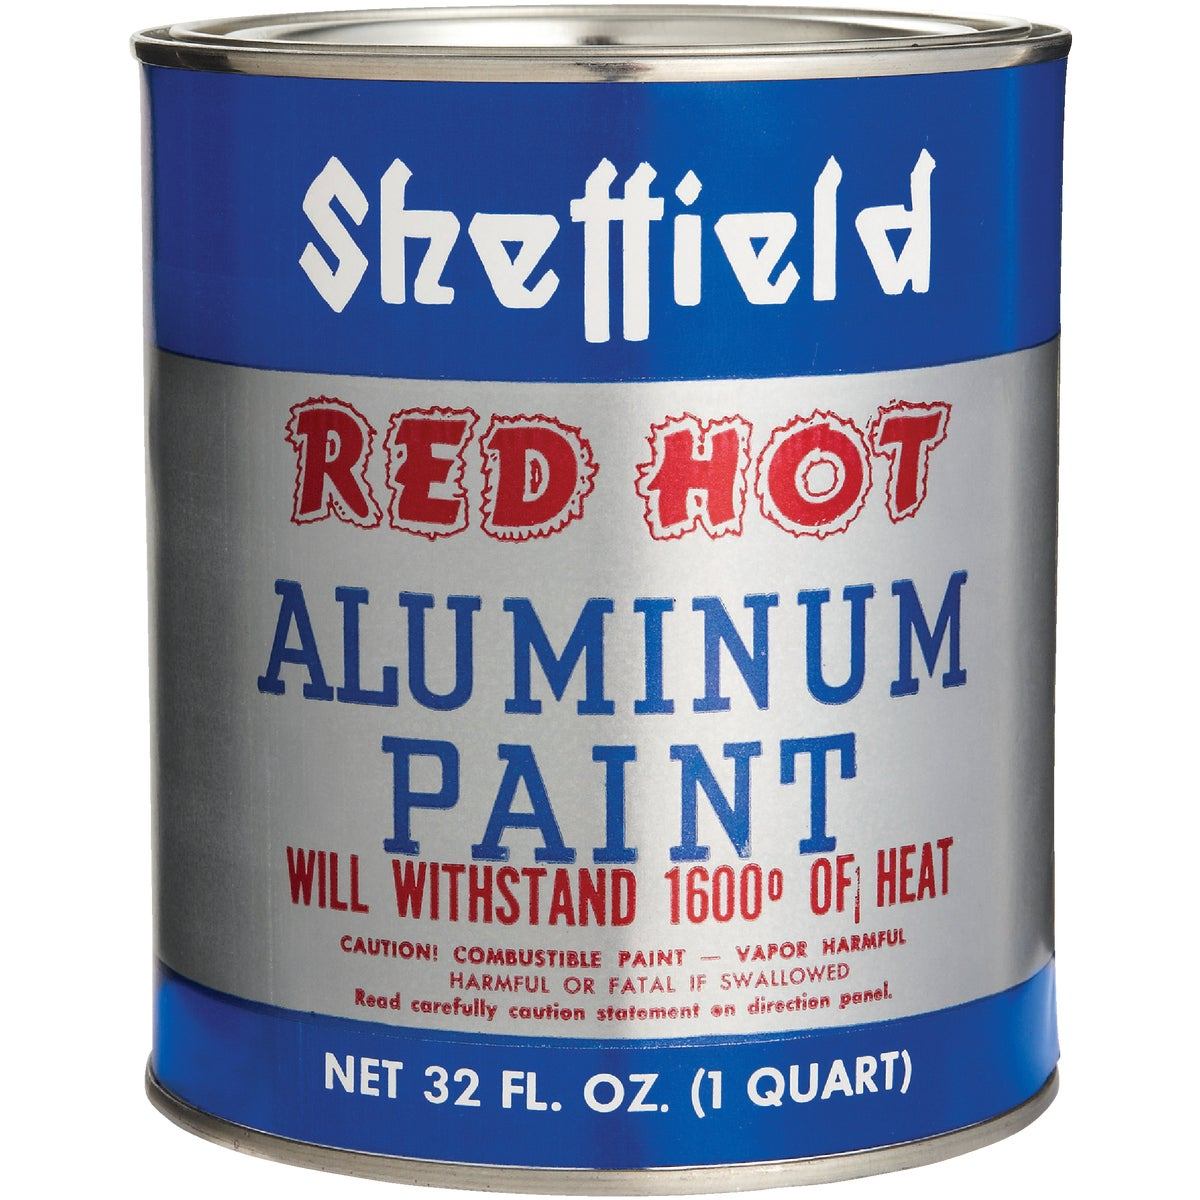 RED HOT ALUMINUM PAINT